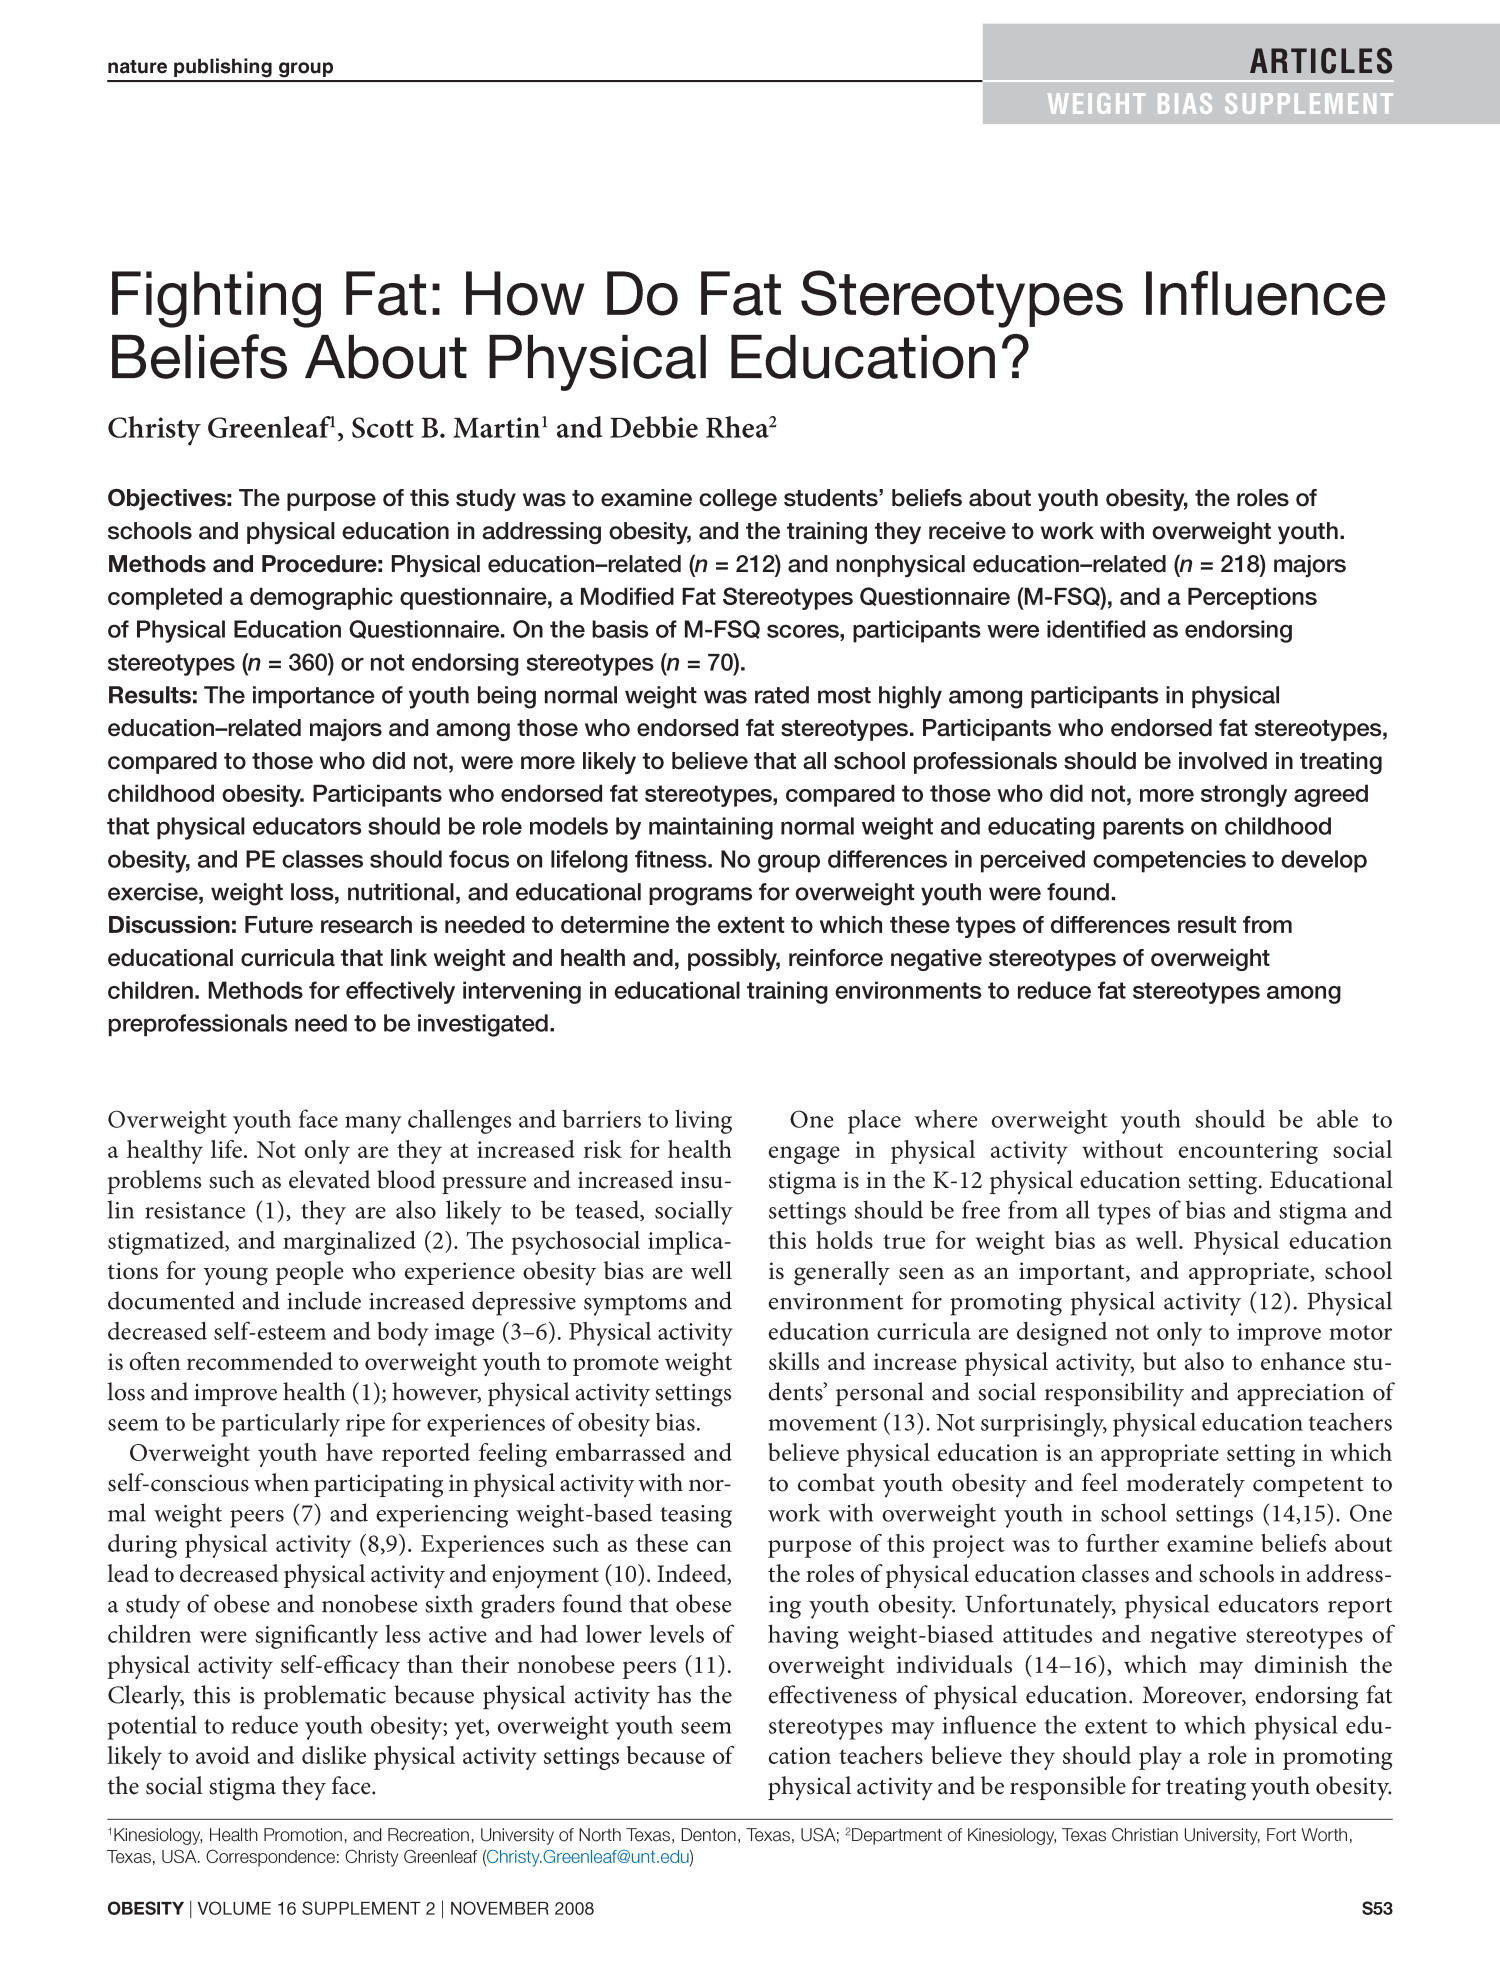 a comparison of two studies on the influence of stereotypes The influence of exposure  the influence of religious content on out-group stereotypes was examined in two  based on this one direct comparison it is.